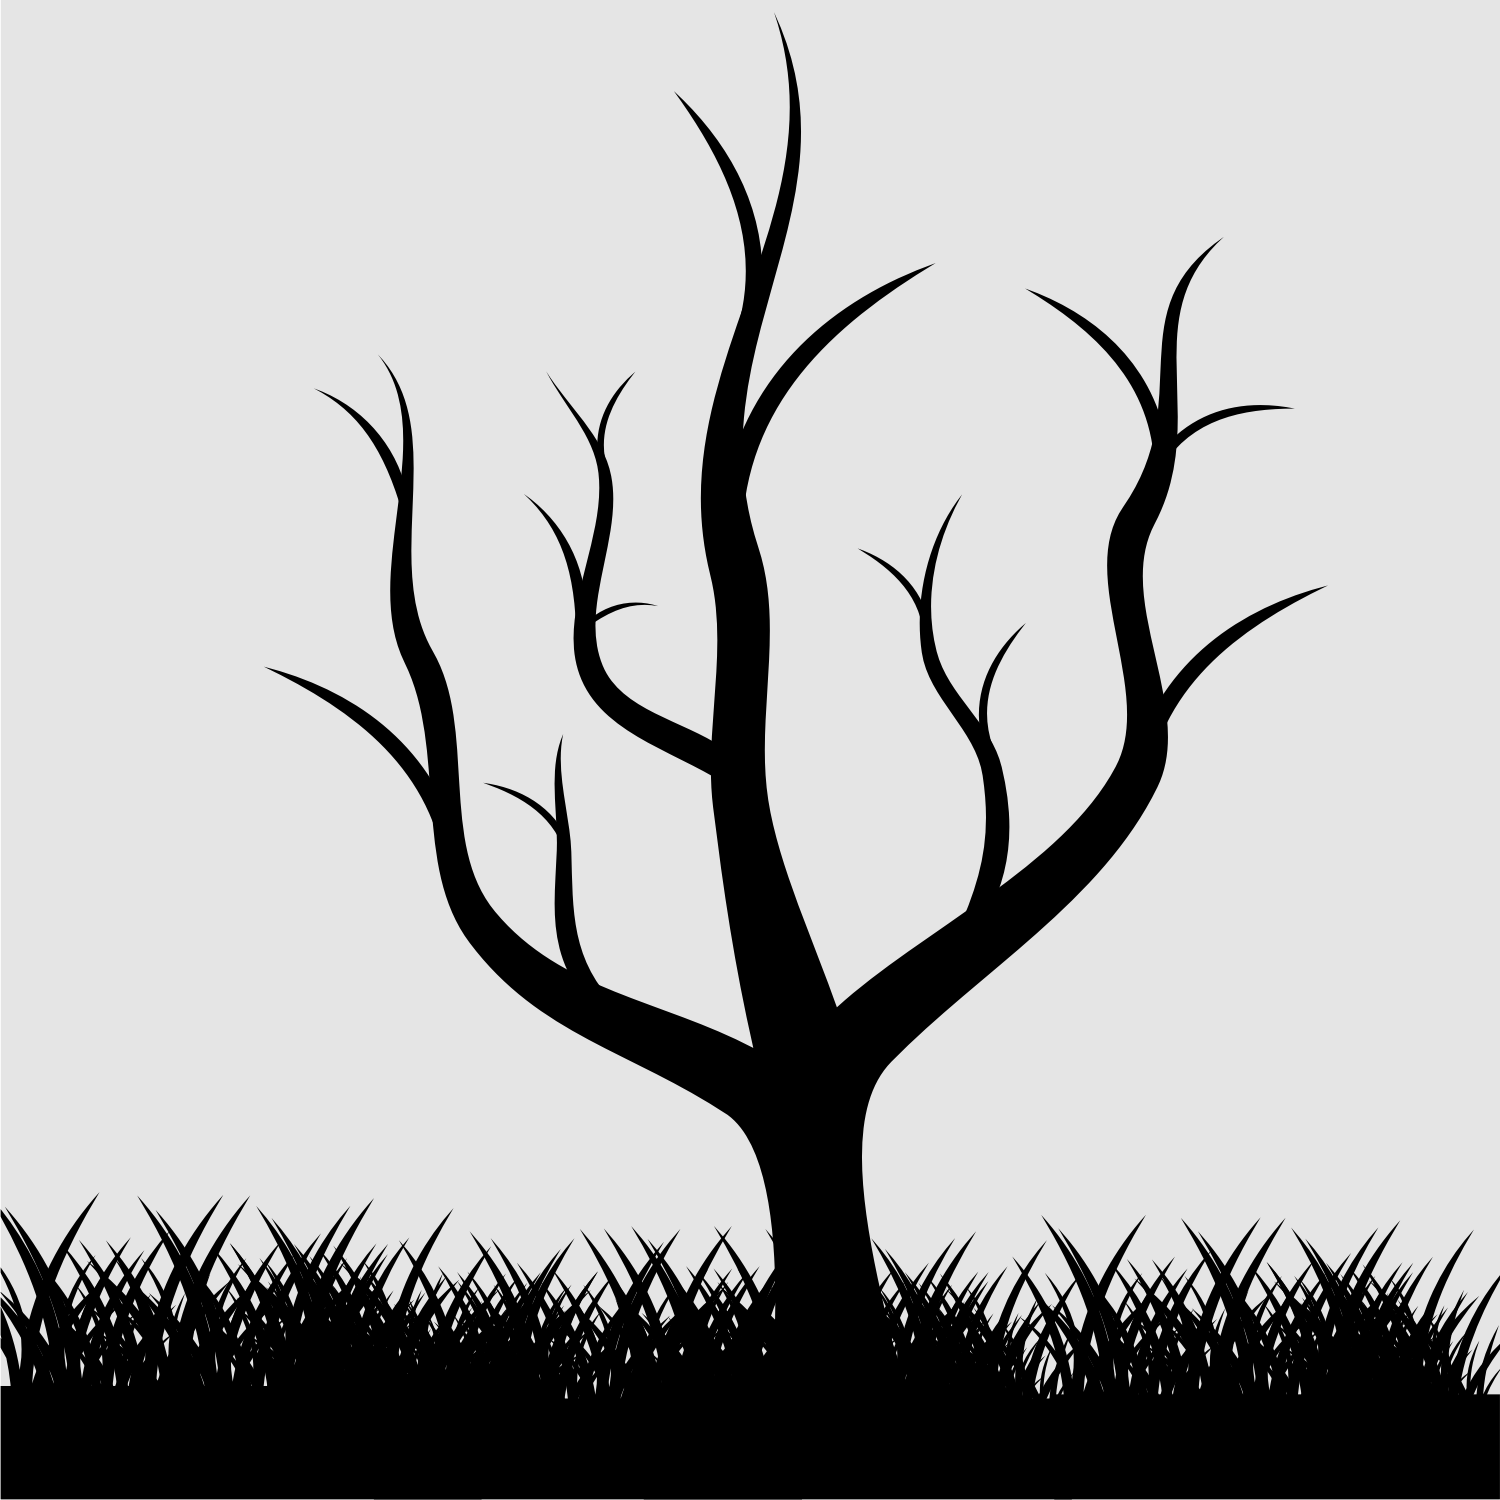 Grass Silhouette Vector Free